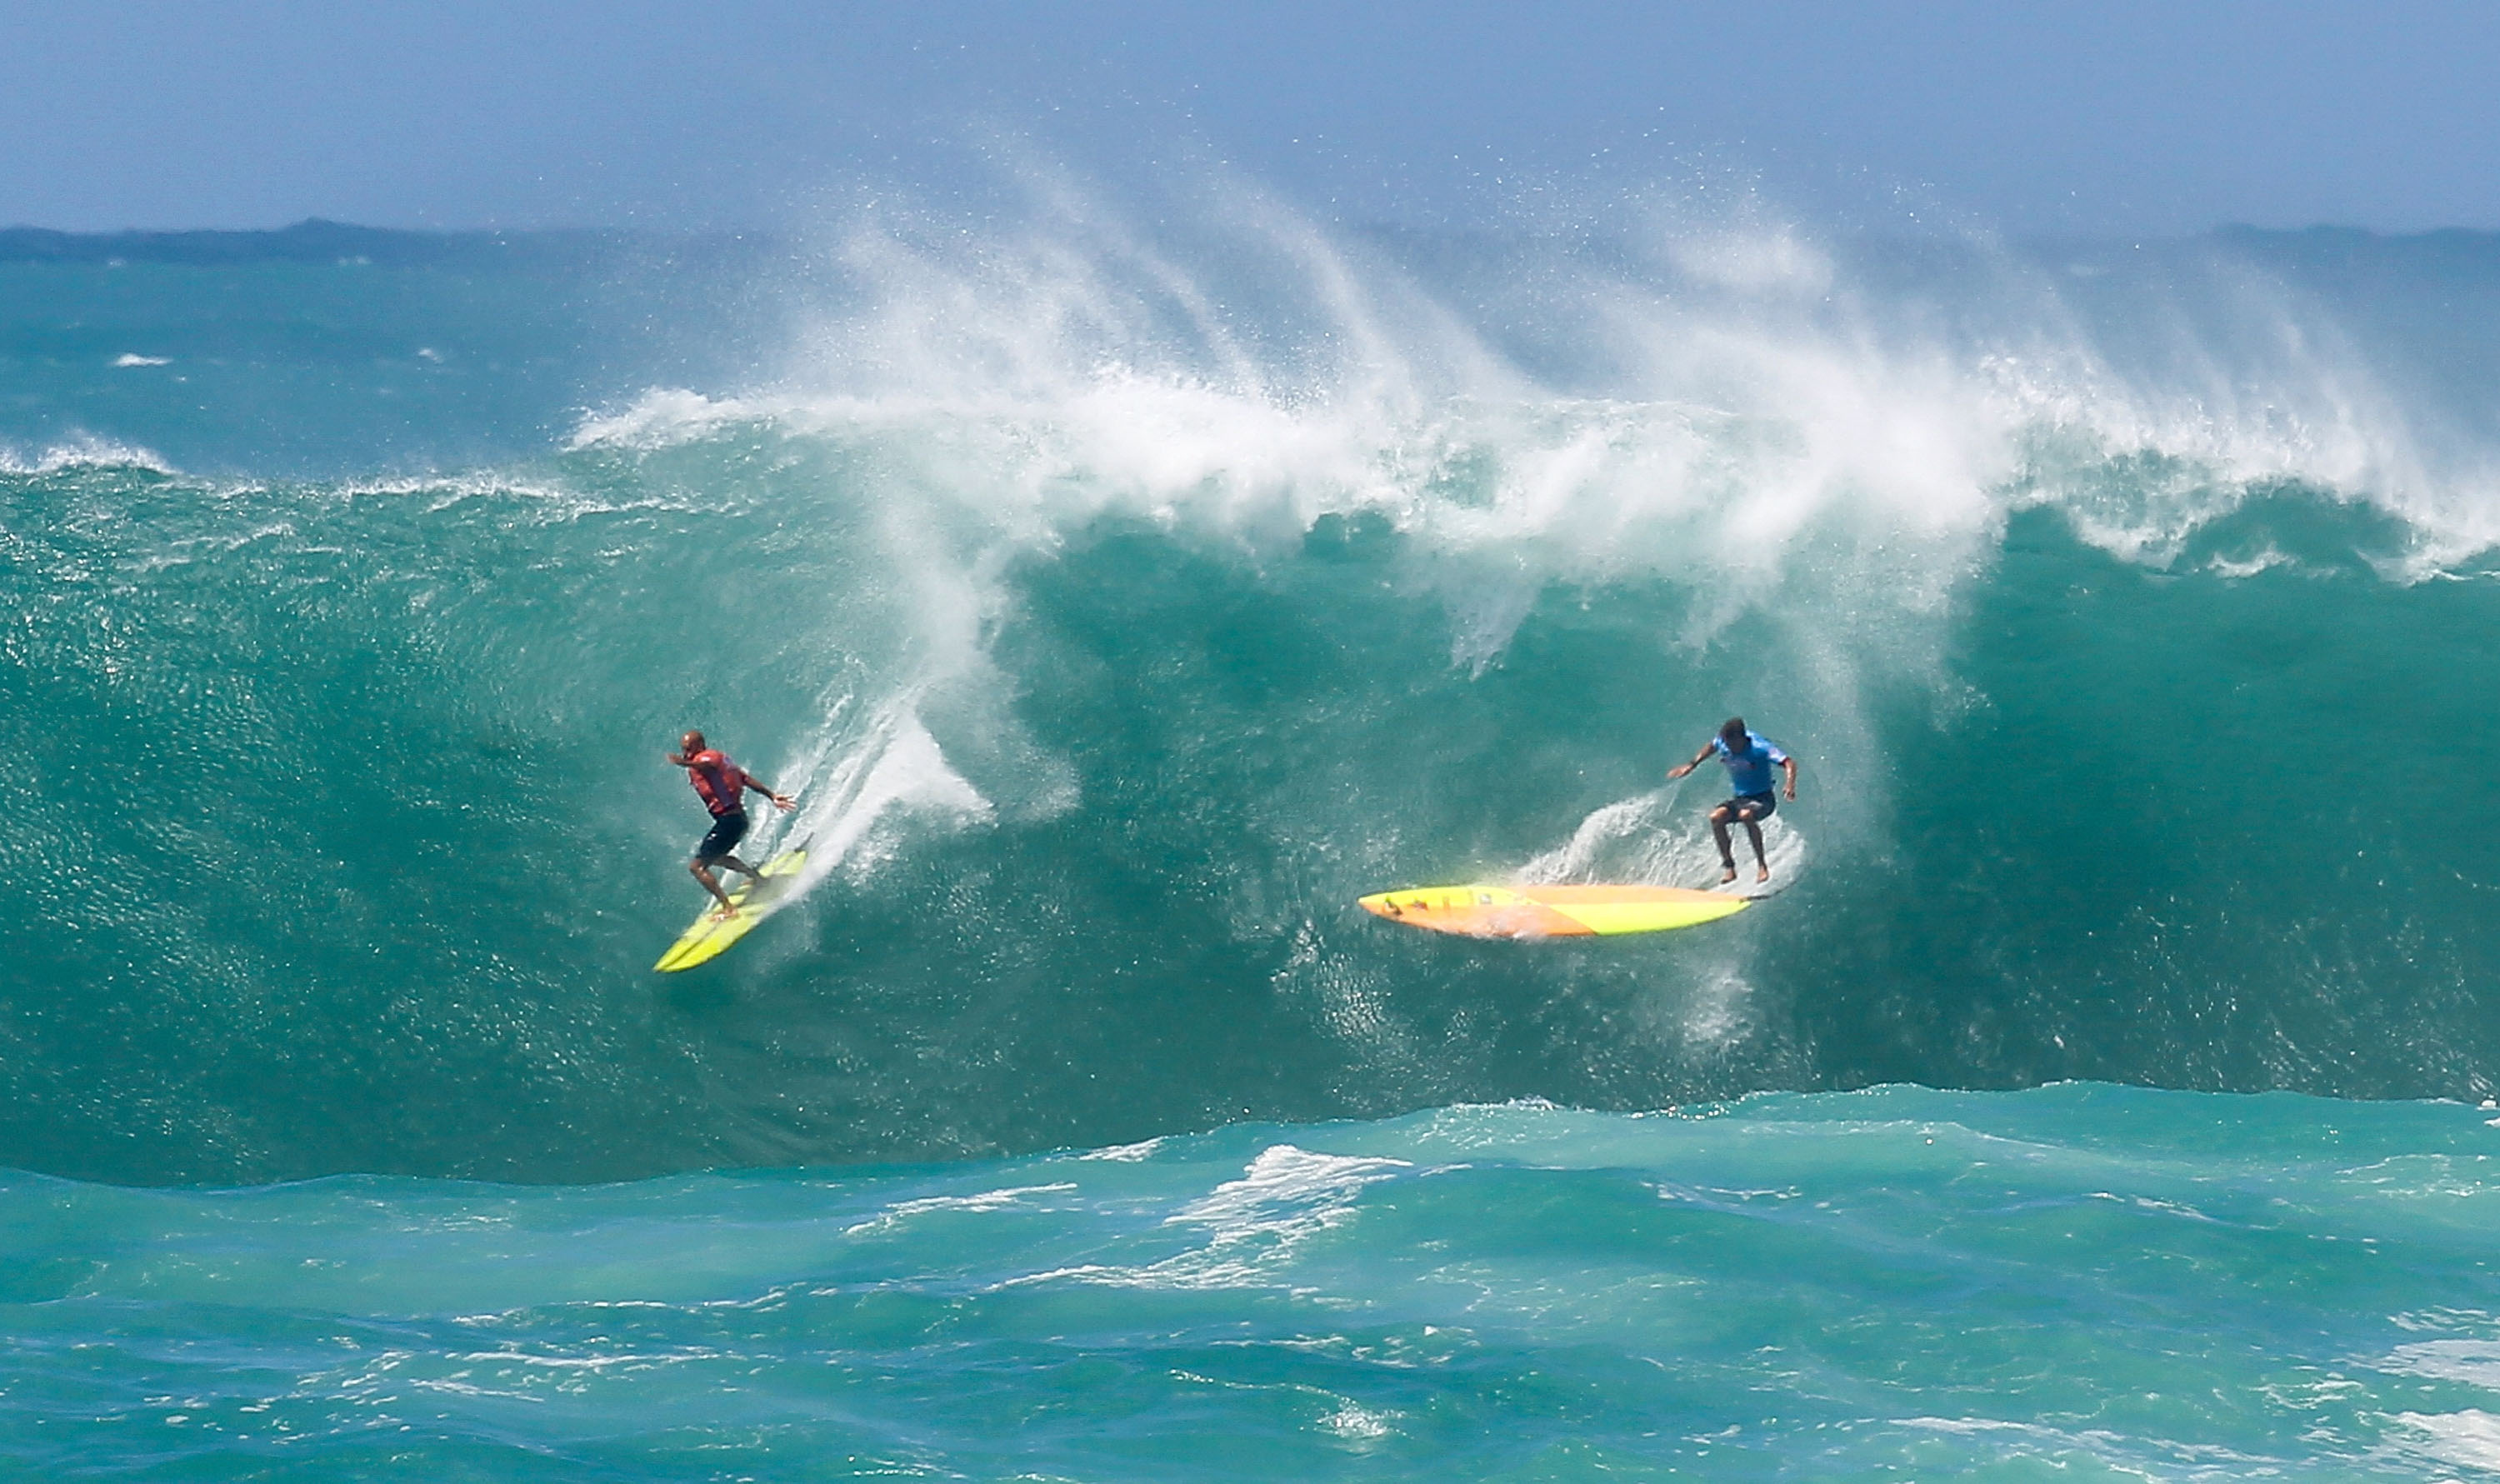 Professional surfer Ramon Navarro (L) makes the drop on a wave while professional surfer Jamie Mitchell loses control and wipes out at Waimea Bay on Feb. 25, 2016 in Waimea, Hawaii.